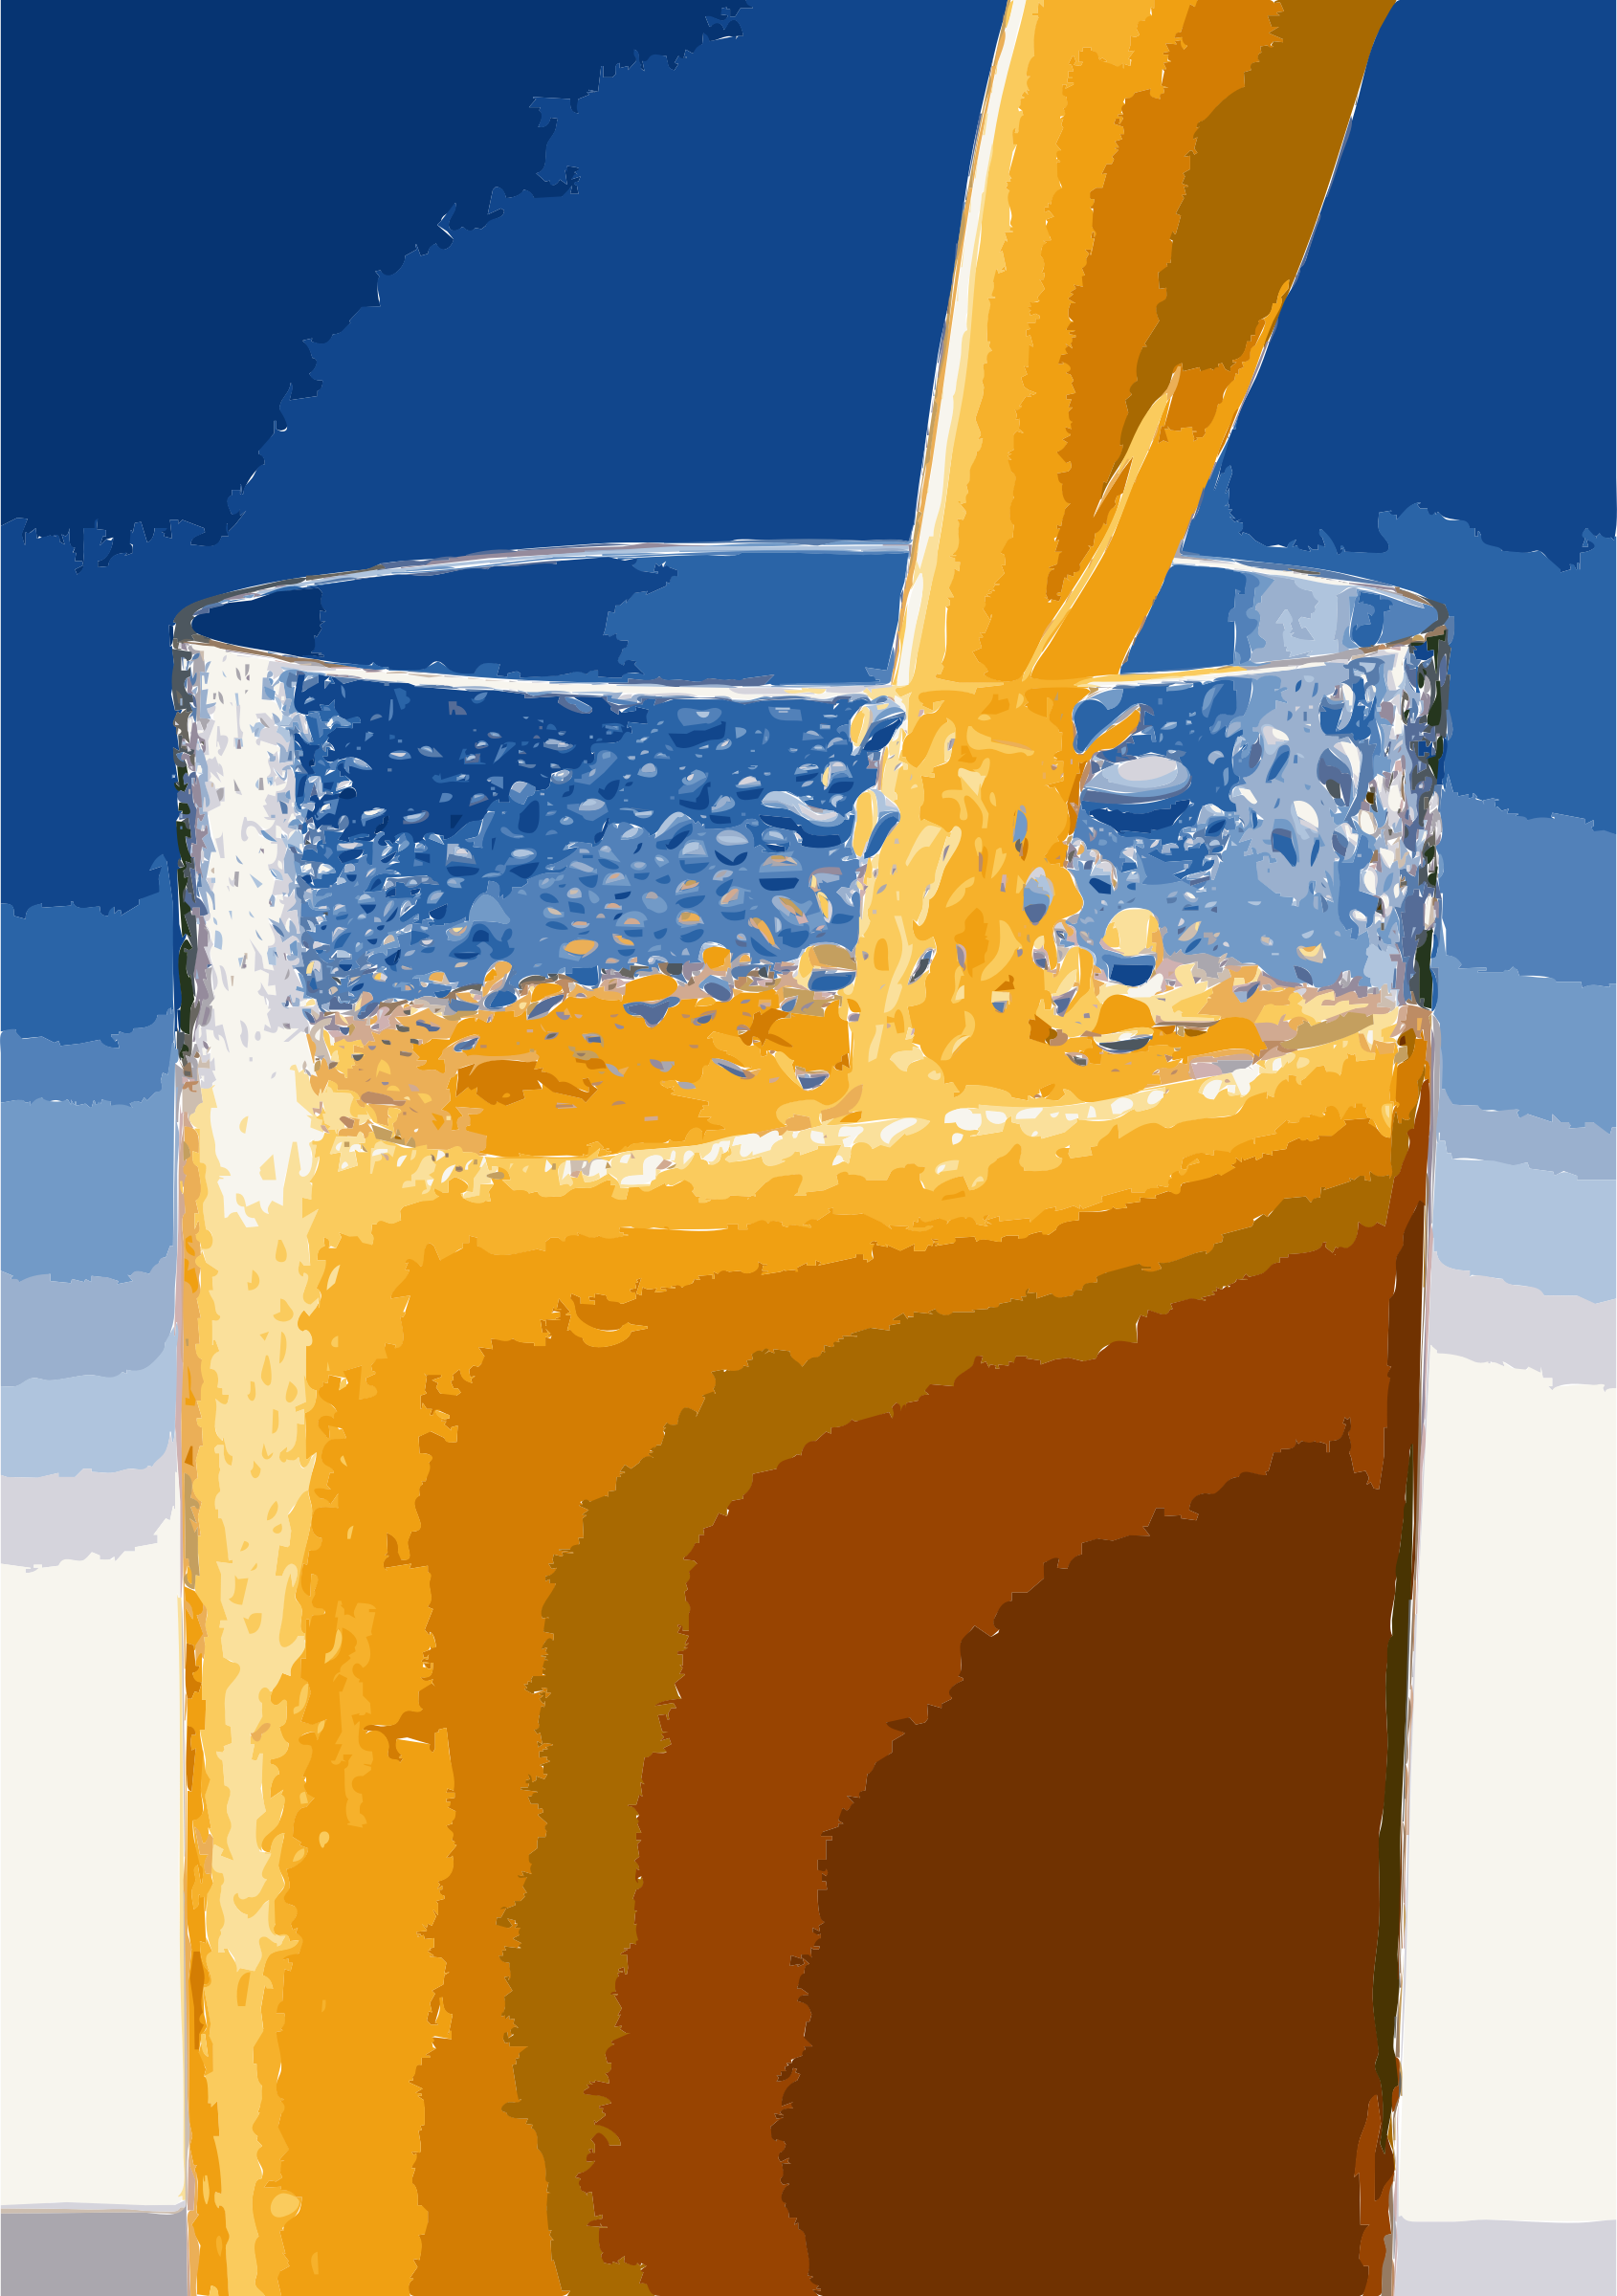 Orange juice 1 edit1 by 5n8ag4+endyauppxpaas